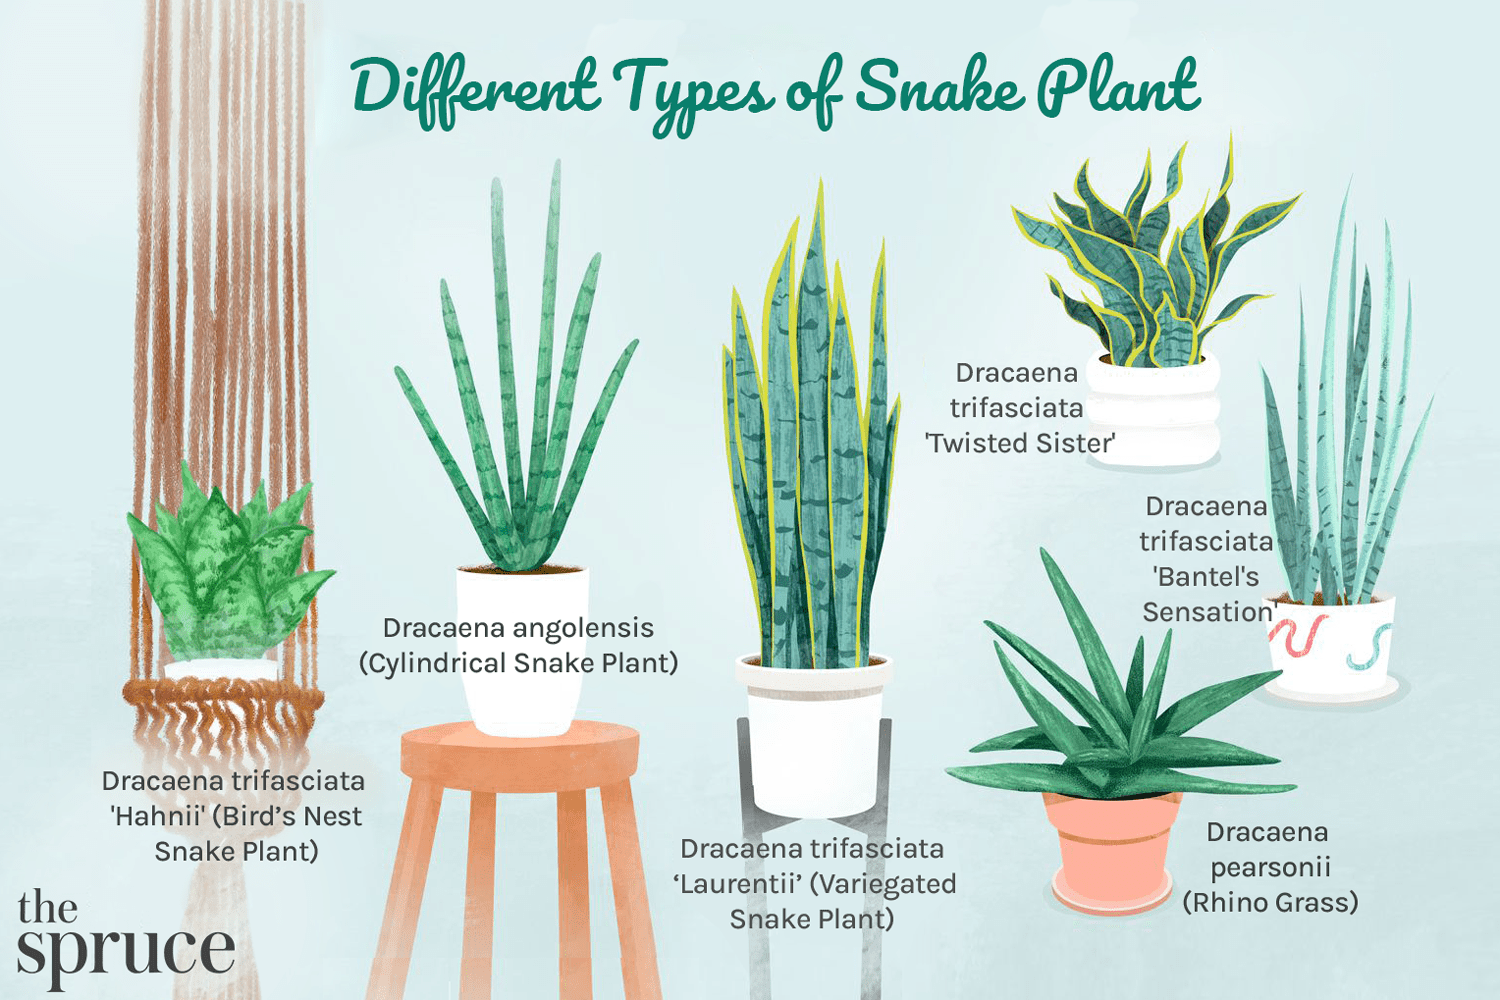 Different Types of Snake Plant